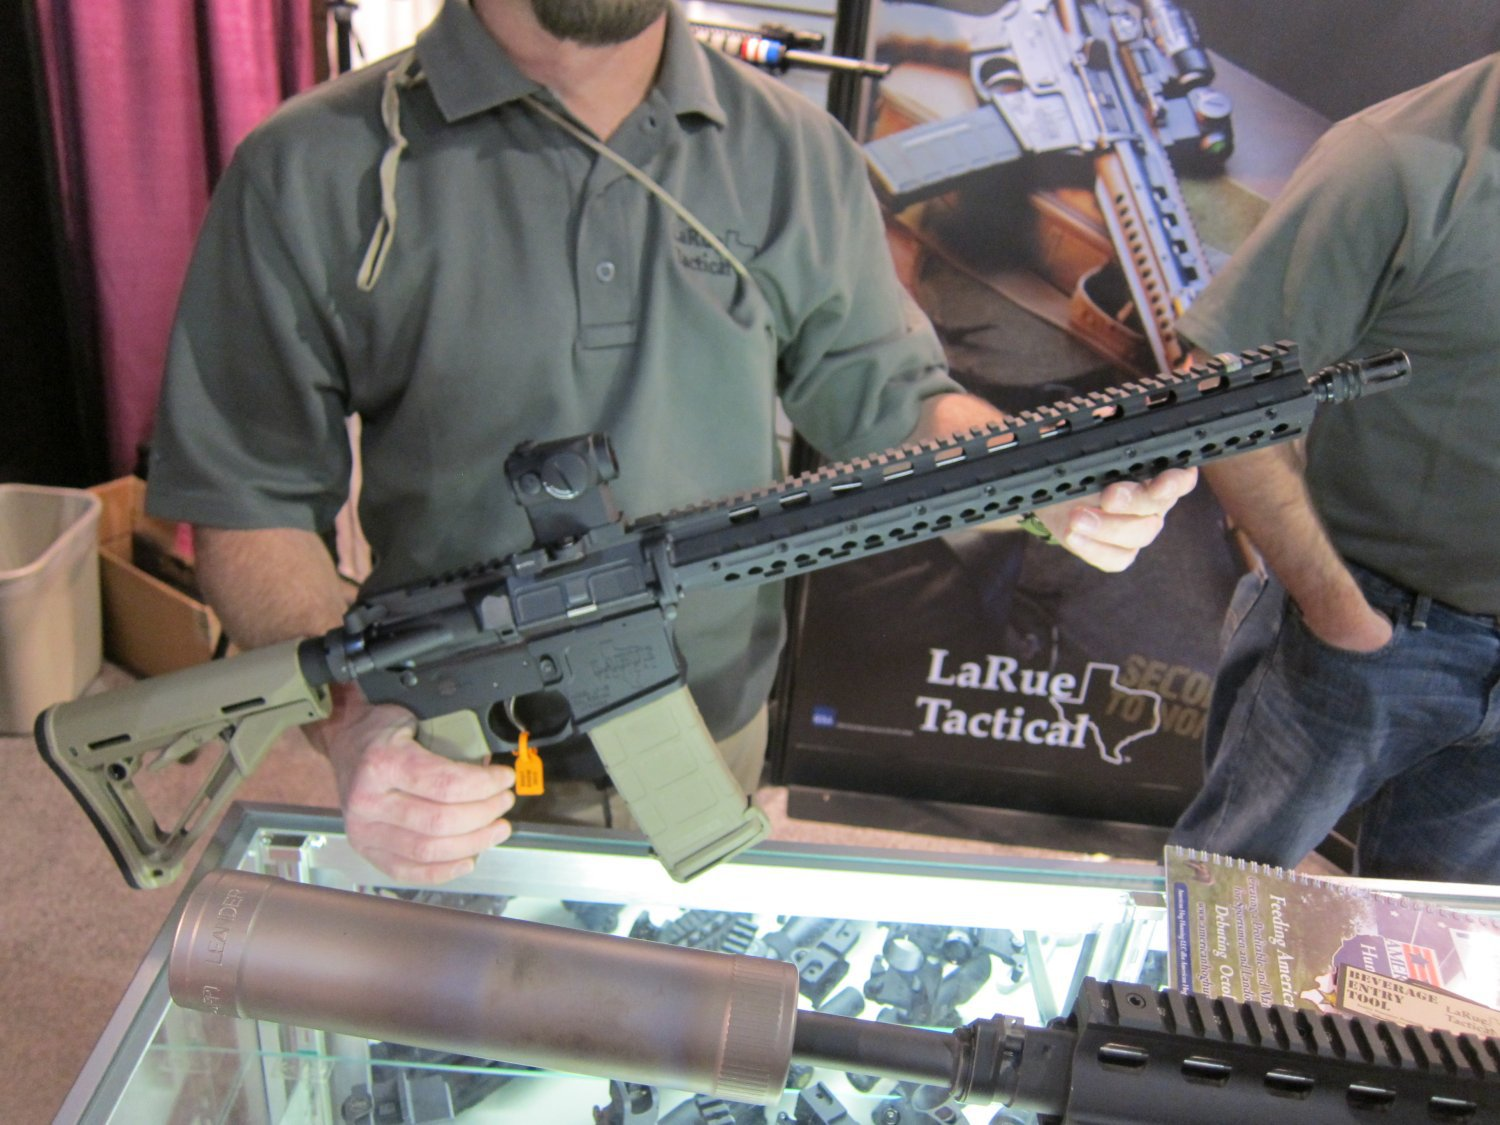 <!--:en-->LaRue Tactical PredatAR Series Lightweight OBR 5.56 and OBR 7.62 Tactical AR Carbines Debut at SHOT Show 2011 (Video!)<!--:-->